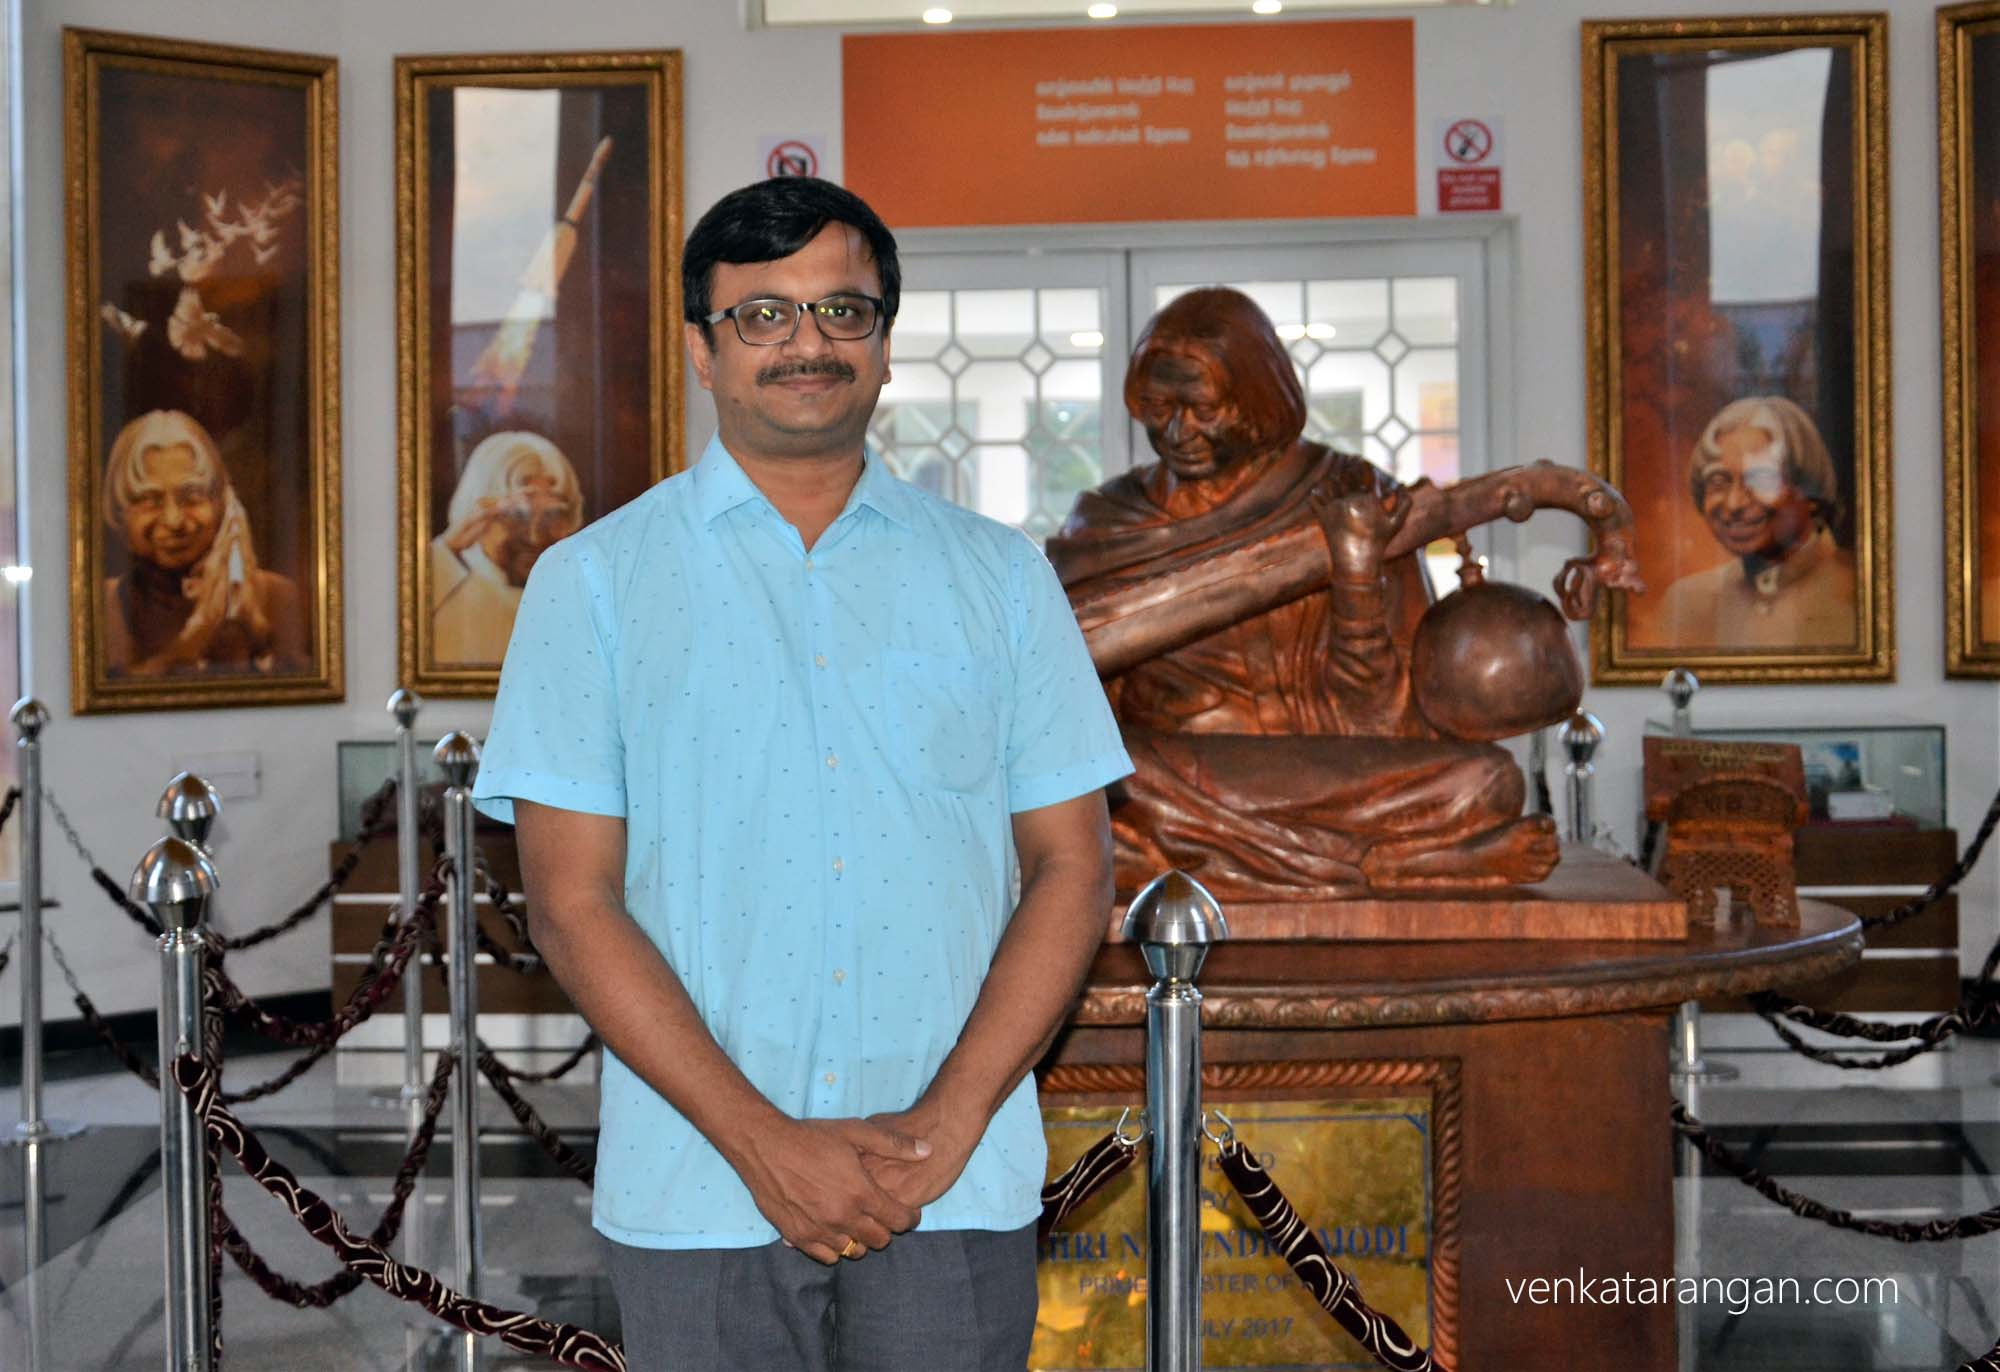 Venkatarangan at the Dr Kalam's memorial, Rameswaram